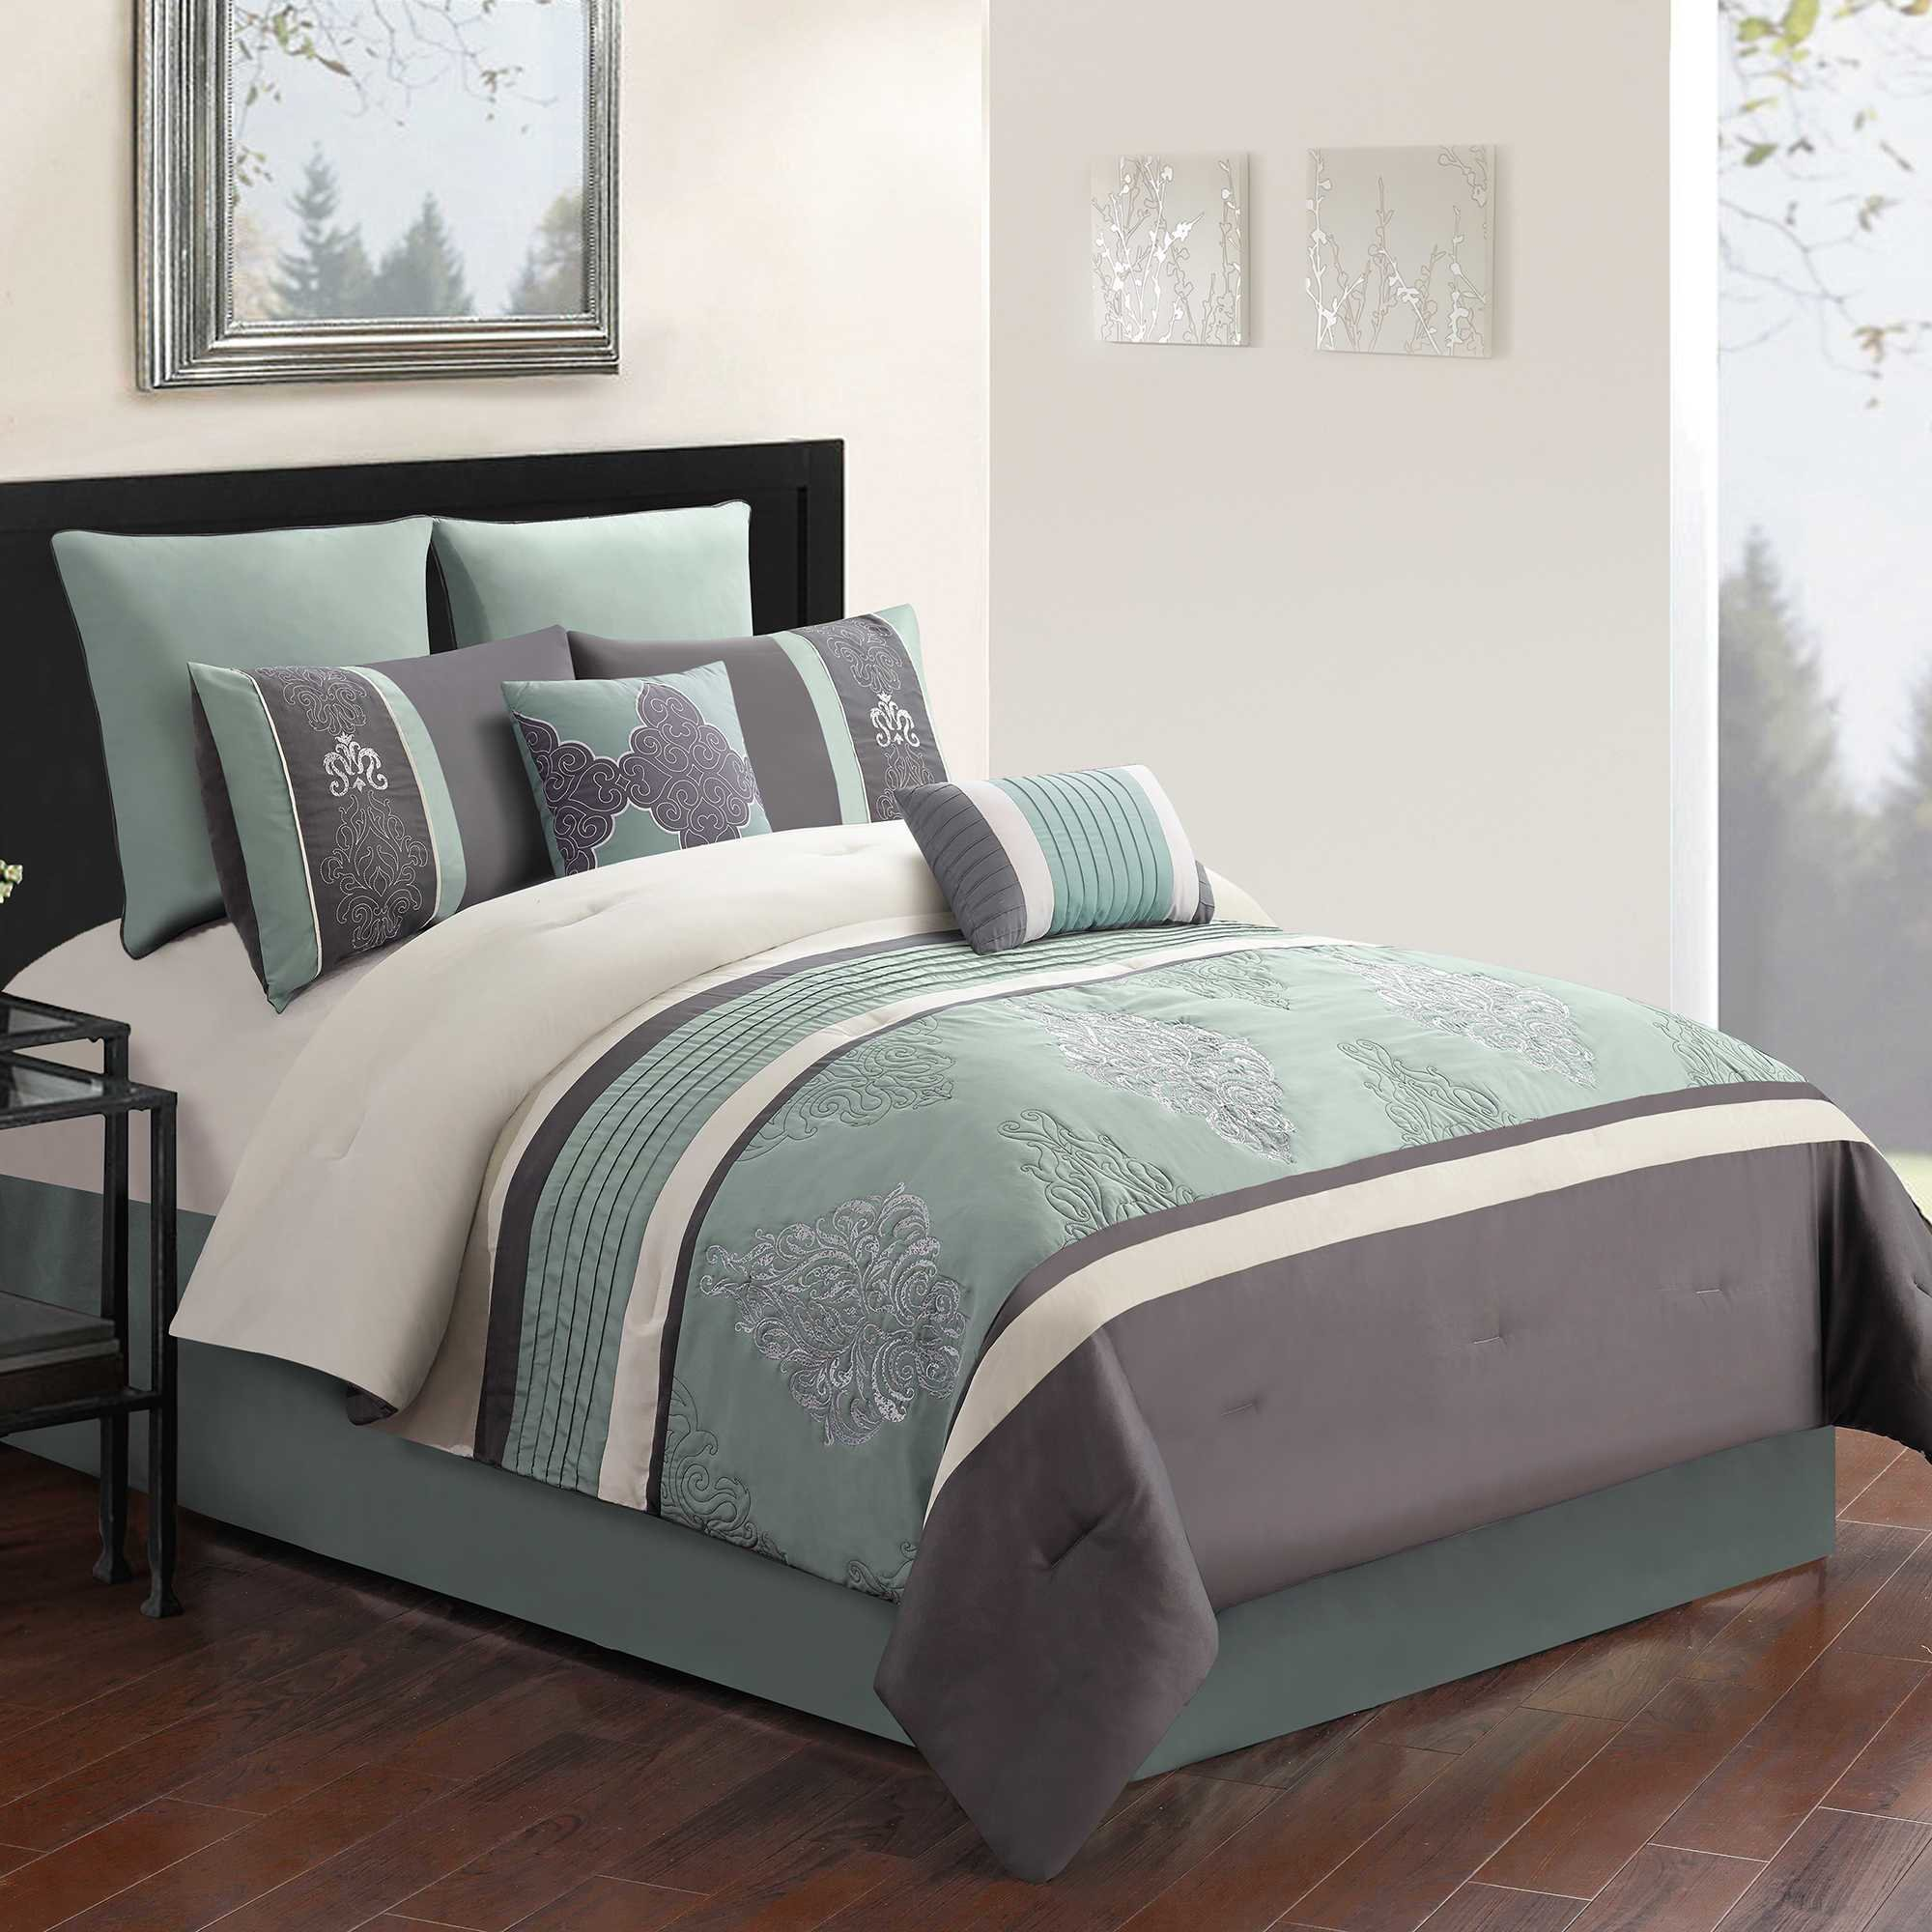 Best Bedroom Very Cozy Sears Bedding For Modern Bedroom Ideas With Pictures